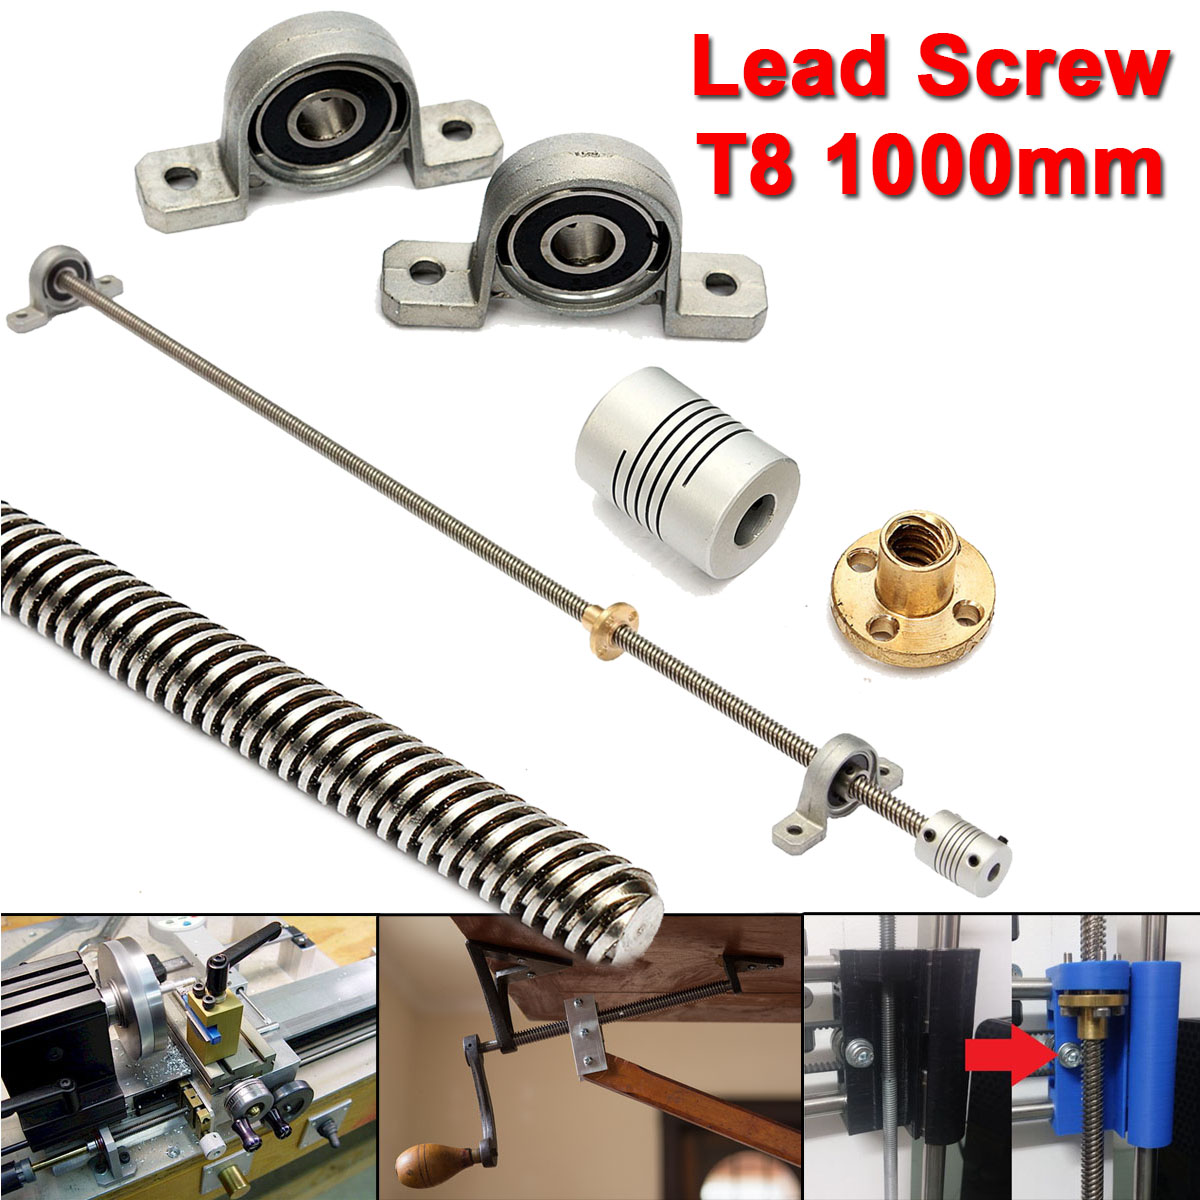 T8 8mm Lead screw 1000mm  + Brass Copper Nut + Bearing Bracket +Flexible Coupling For 3D Printer CNCT8 8mm Lead screw 1000mm  + Brass Copper Nut + Bearing Bracket +Flexible Coupling For 3D Printer CNC